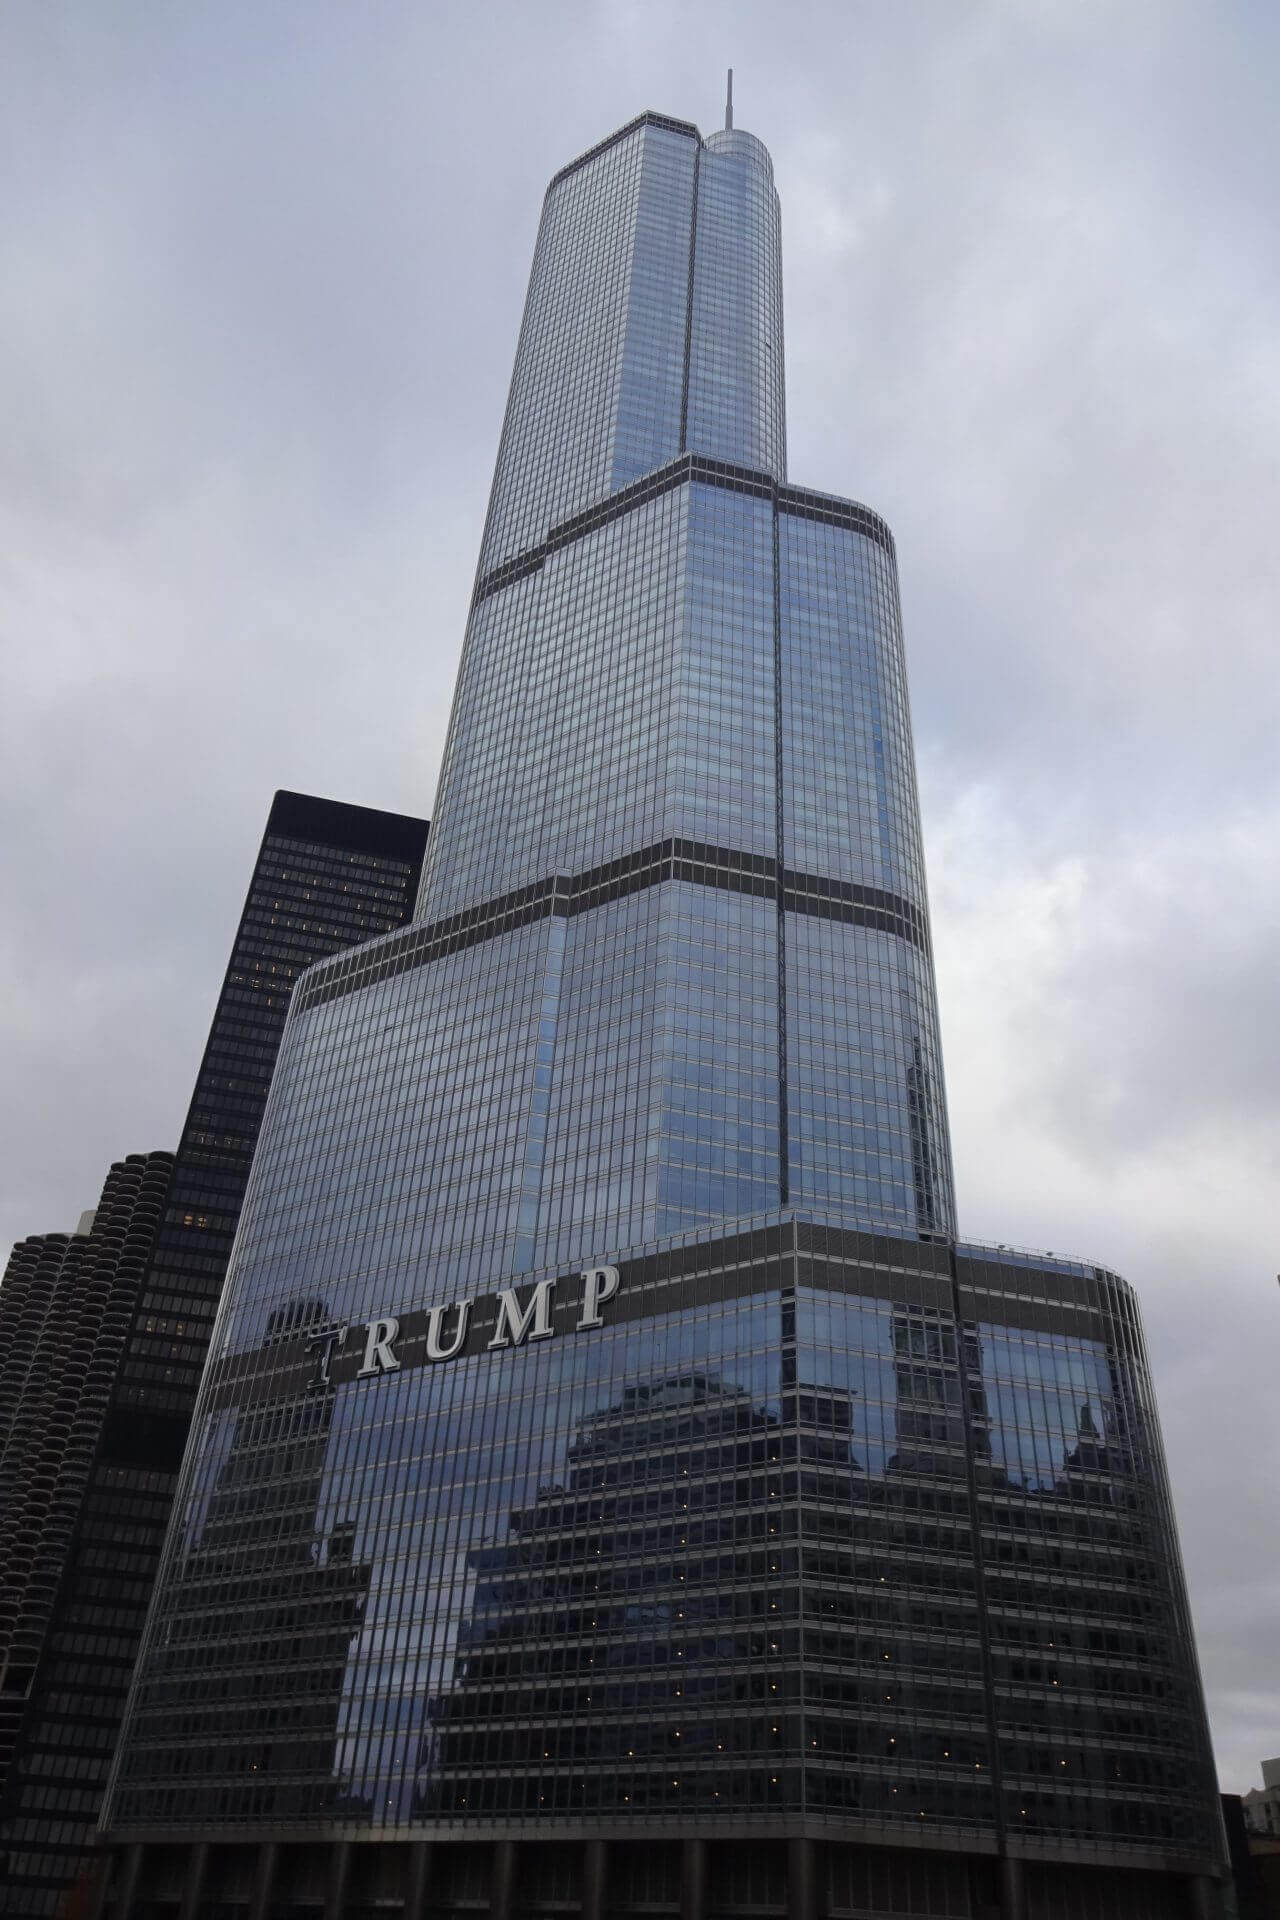 Downtown. Trump Tower. Bilder und Eindrücke aus Chicago, Illinois, United States.